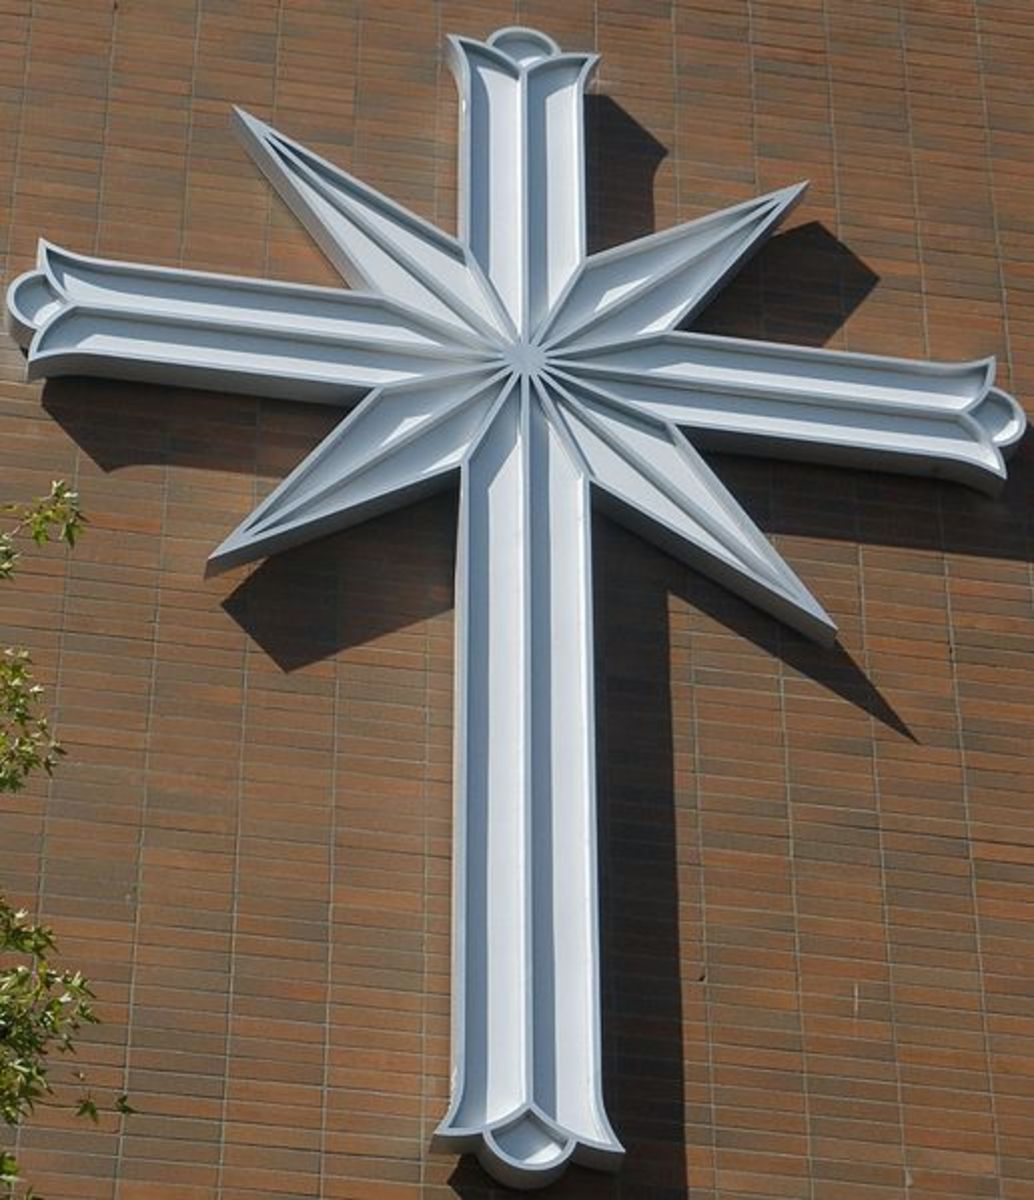 Symbol of the Church of Scientology